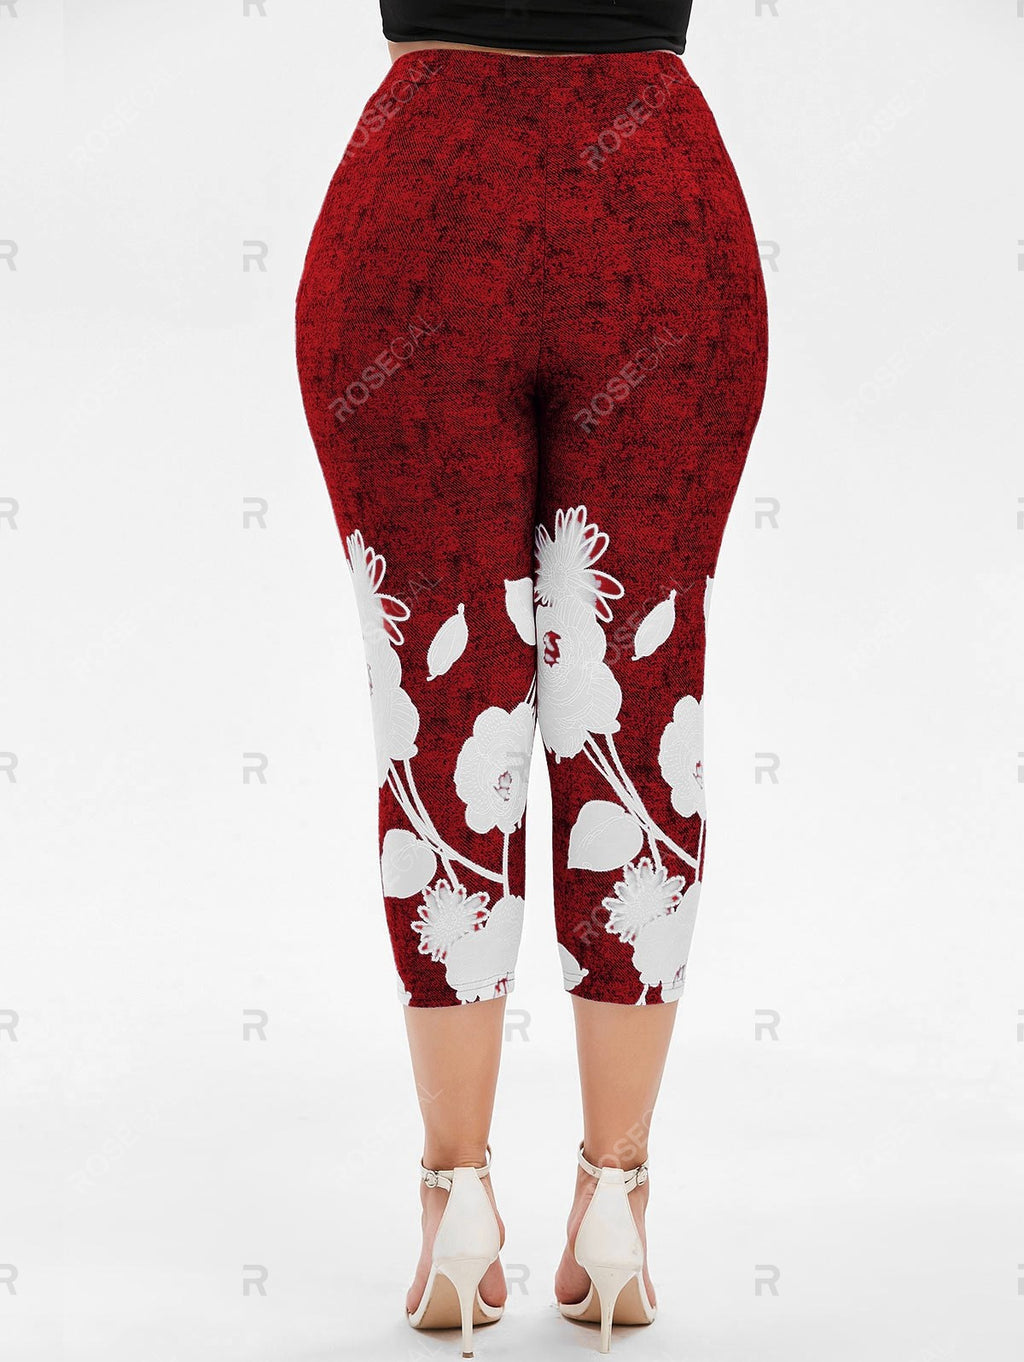 Plus Size Space Dye Capri Leggings